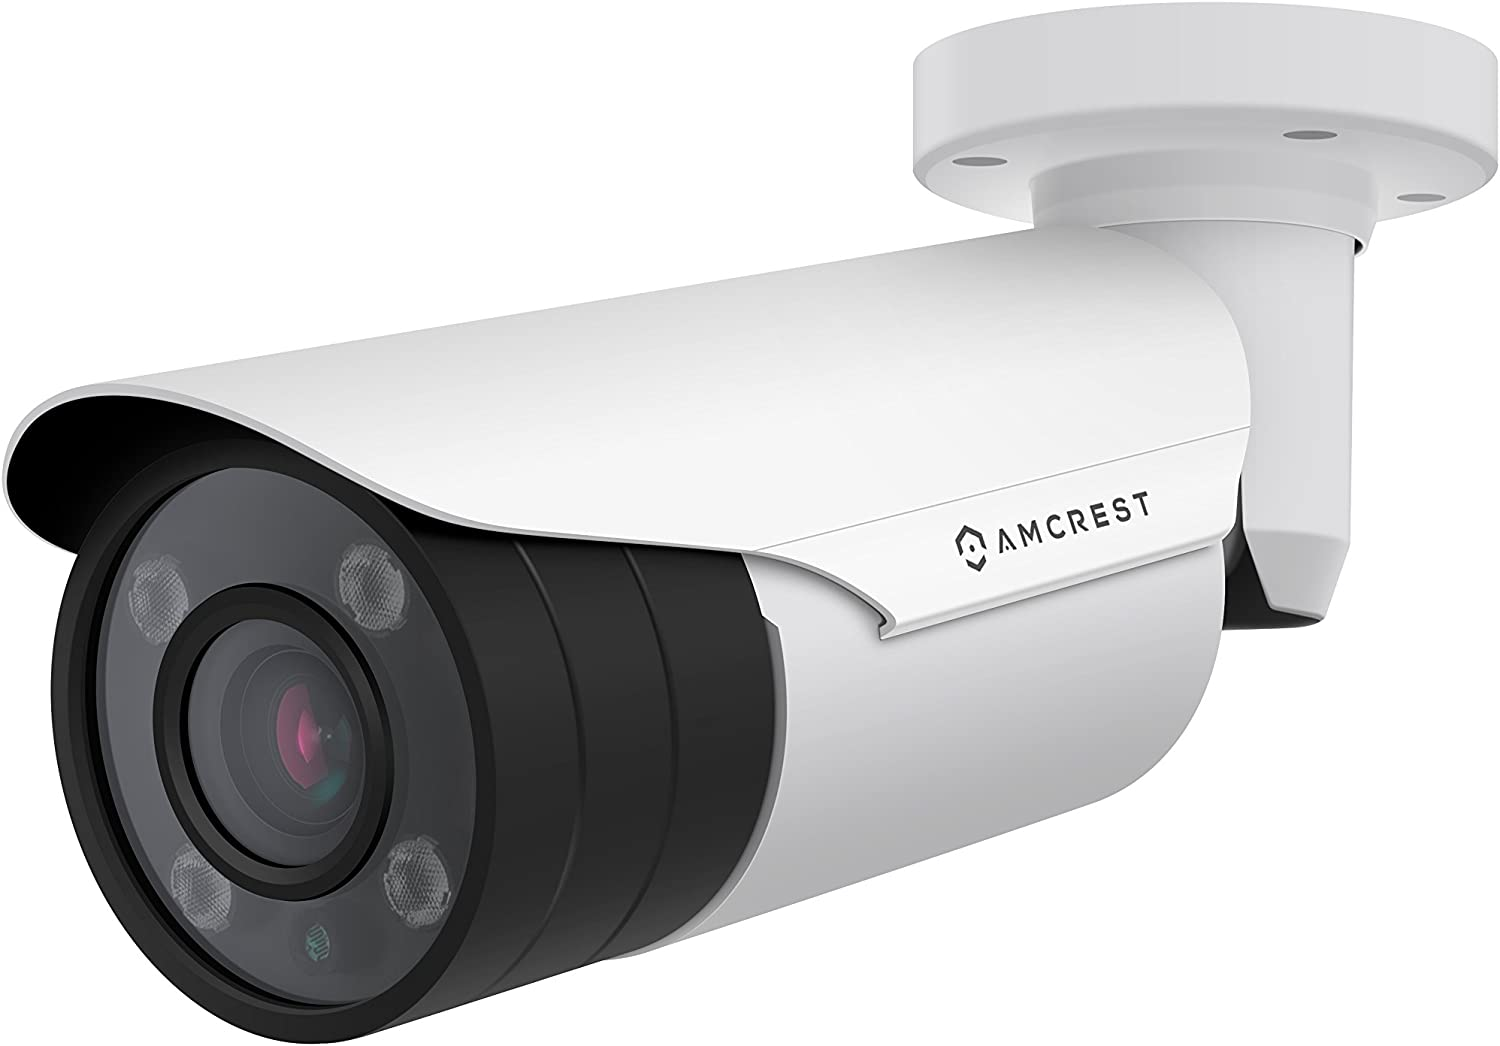 Amcrest 4xOptical Zoom HD 1080P 1920TVL Bullet Outdoor Security Camera Quadbrid 4-in-1 HD-CVI TVI AHD Analog , 2MP 1920×1080, 164ft NightVision, Motorized Varifocal Lens 40 -90 , White AF-2MBC-VARIW